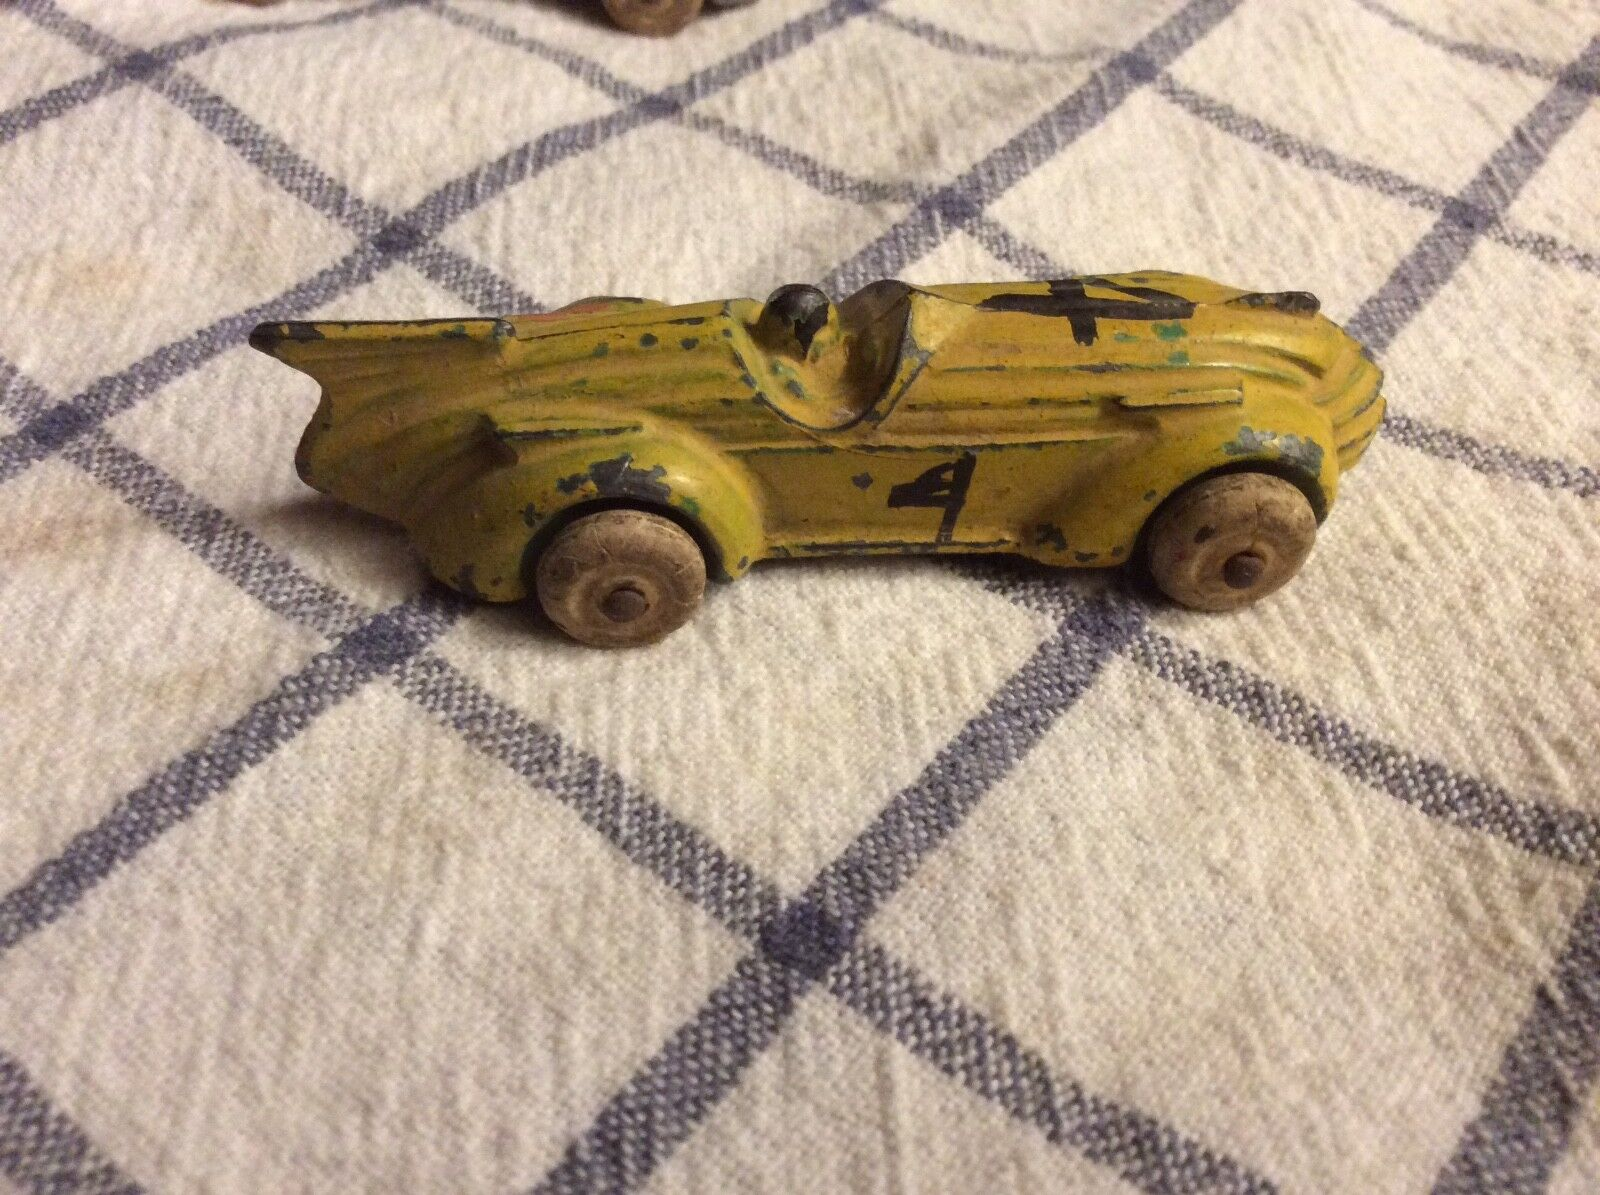 Vintage 30s Barclay Juguete Diecast Racer Race Coche 3.5  EE. UU.